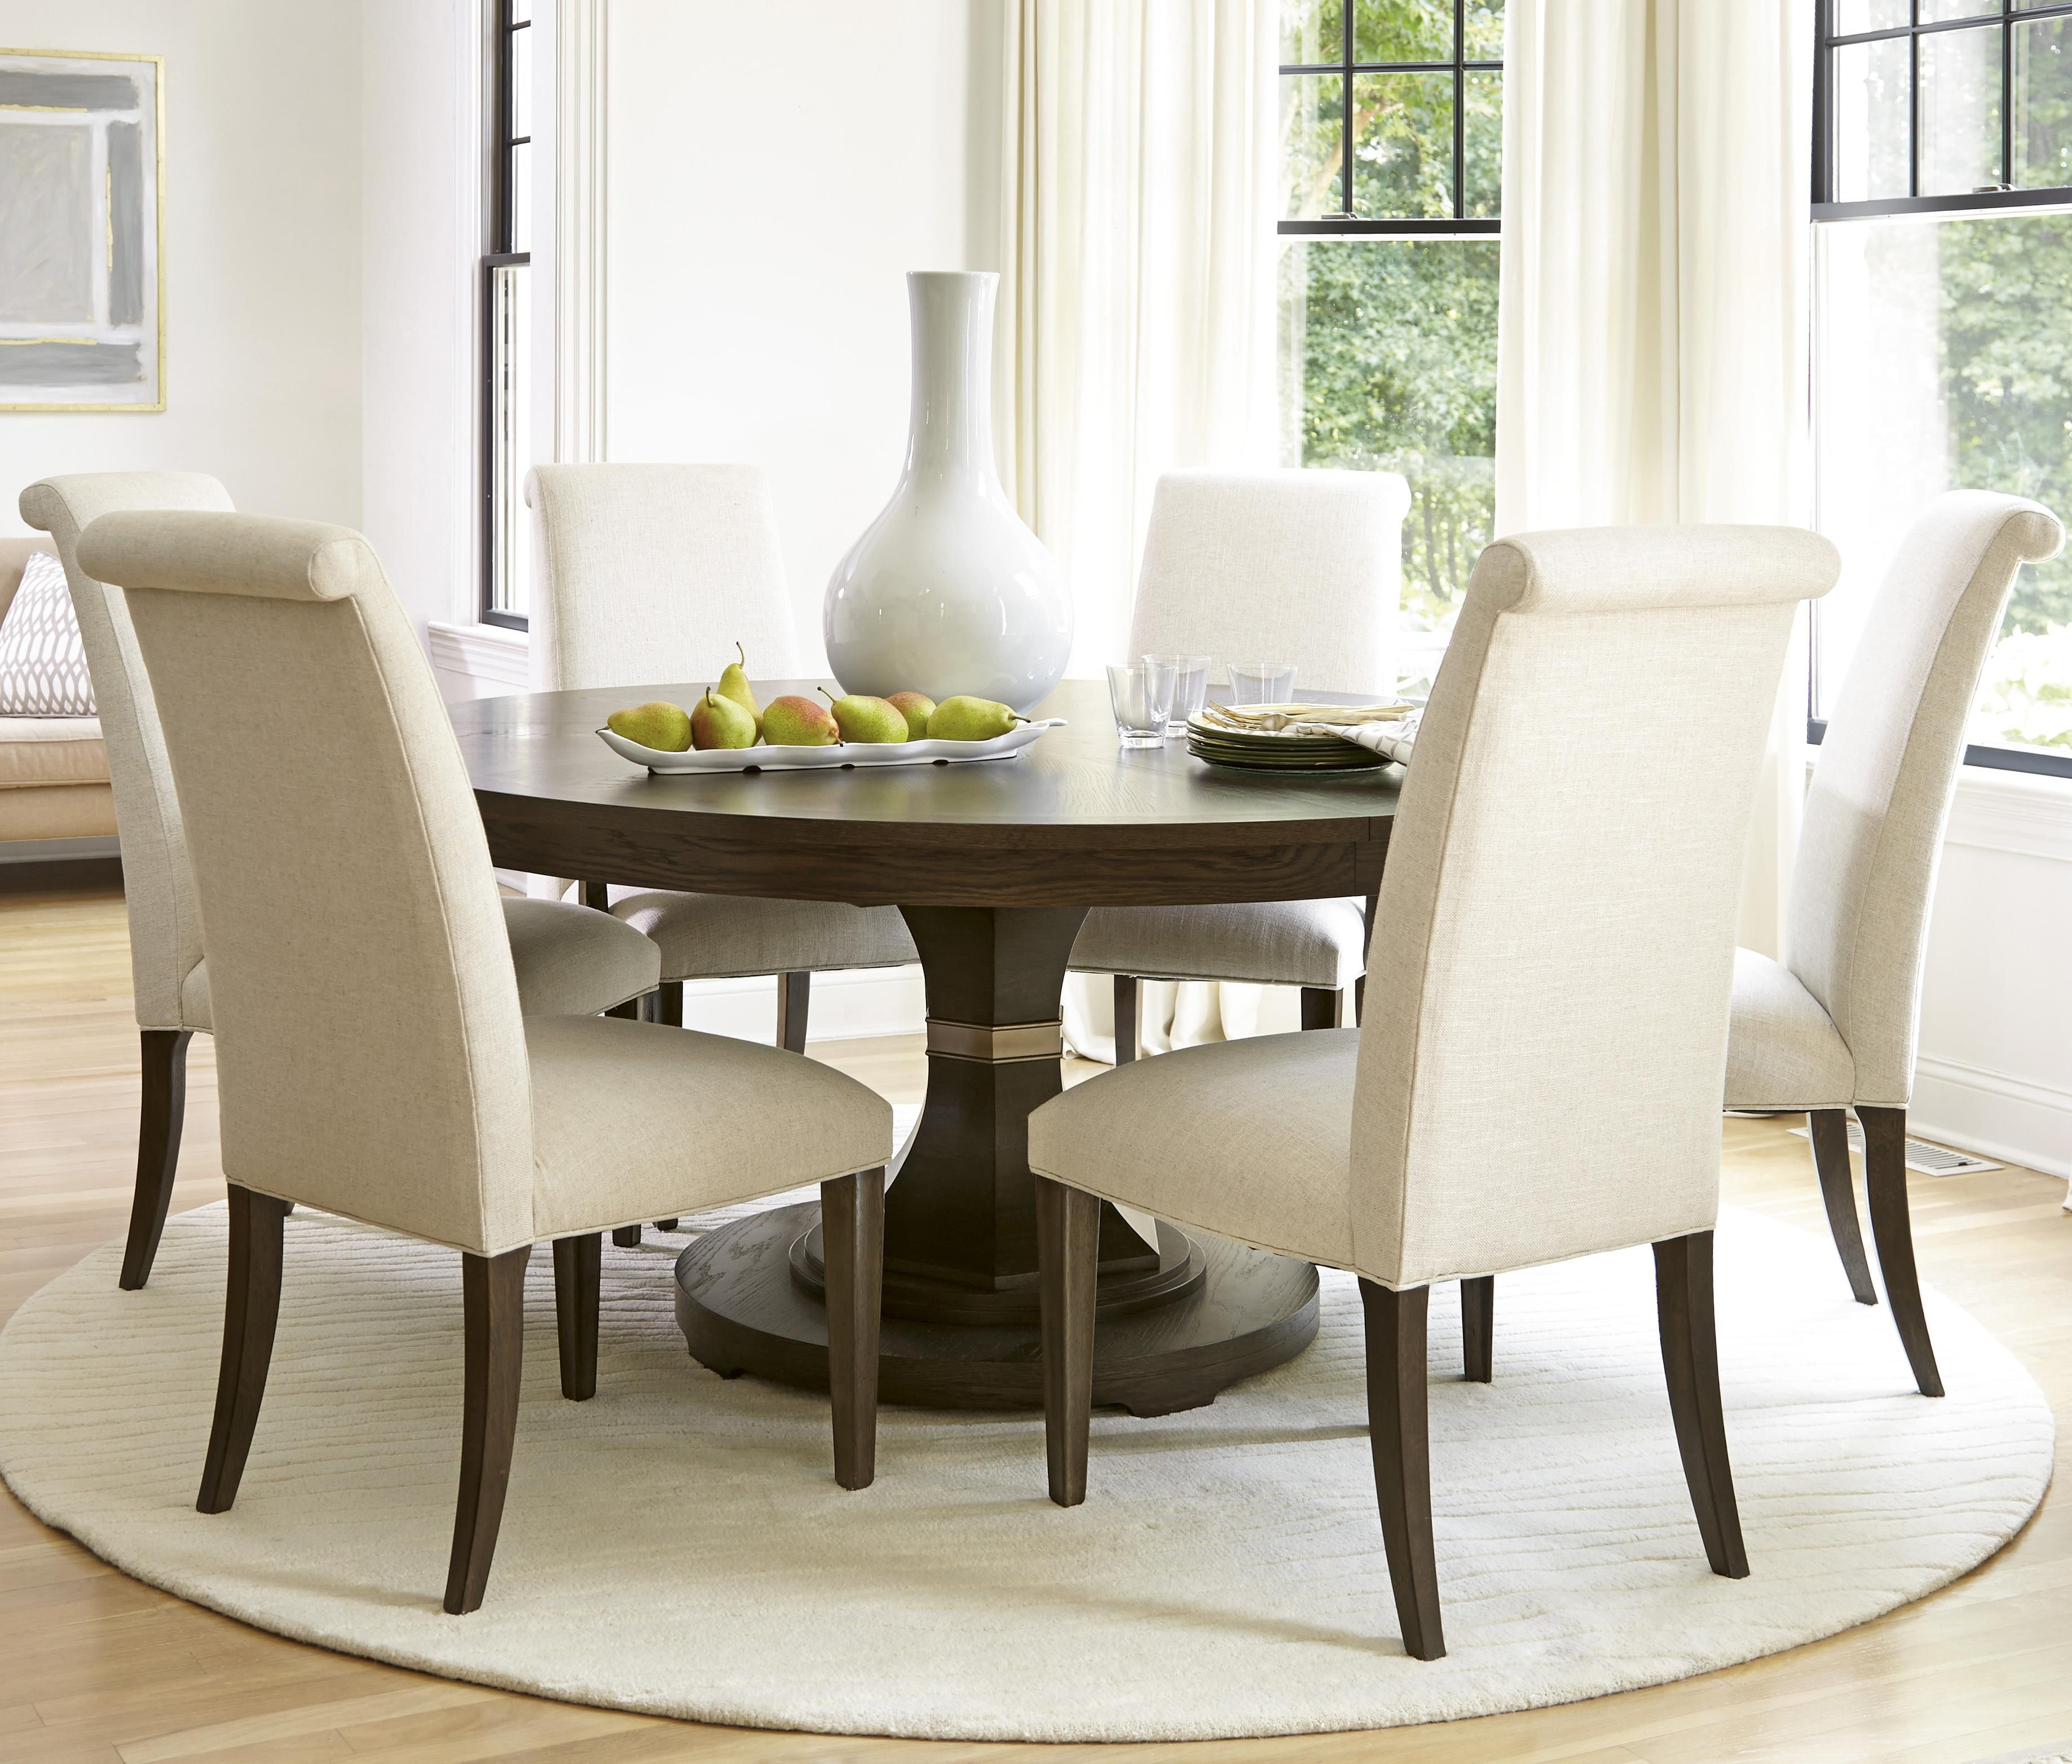 California  Hollywood Hills 7 Piece Dining Set With Round Table Alluring Universal Furniture Dining Room Set Design Ideas